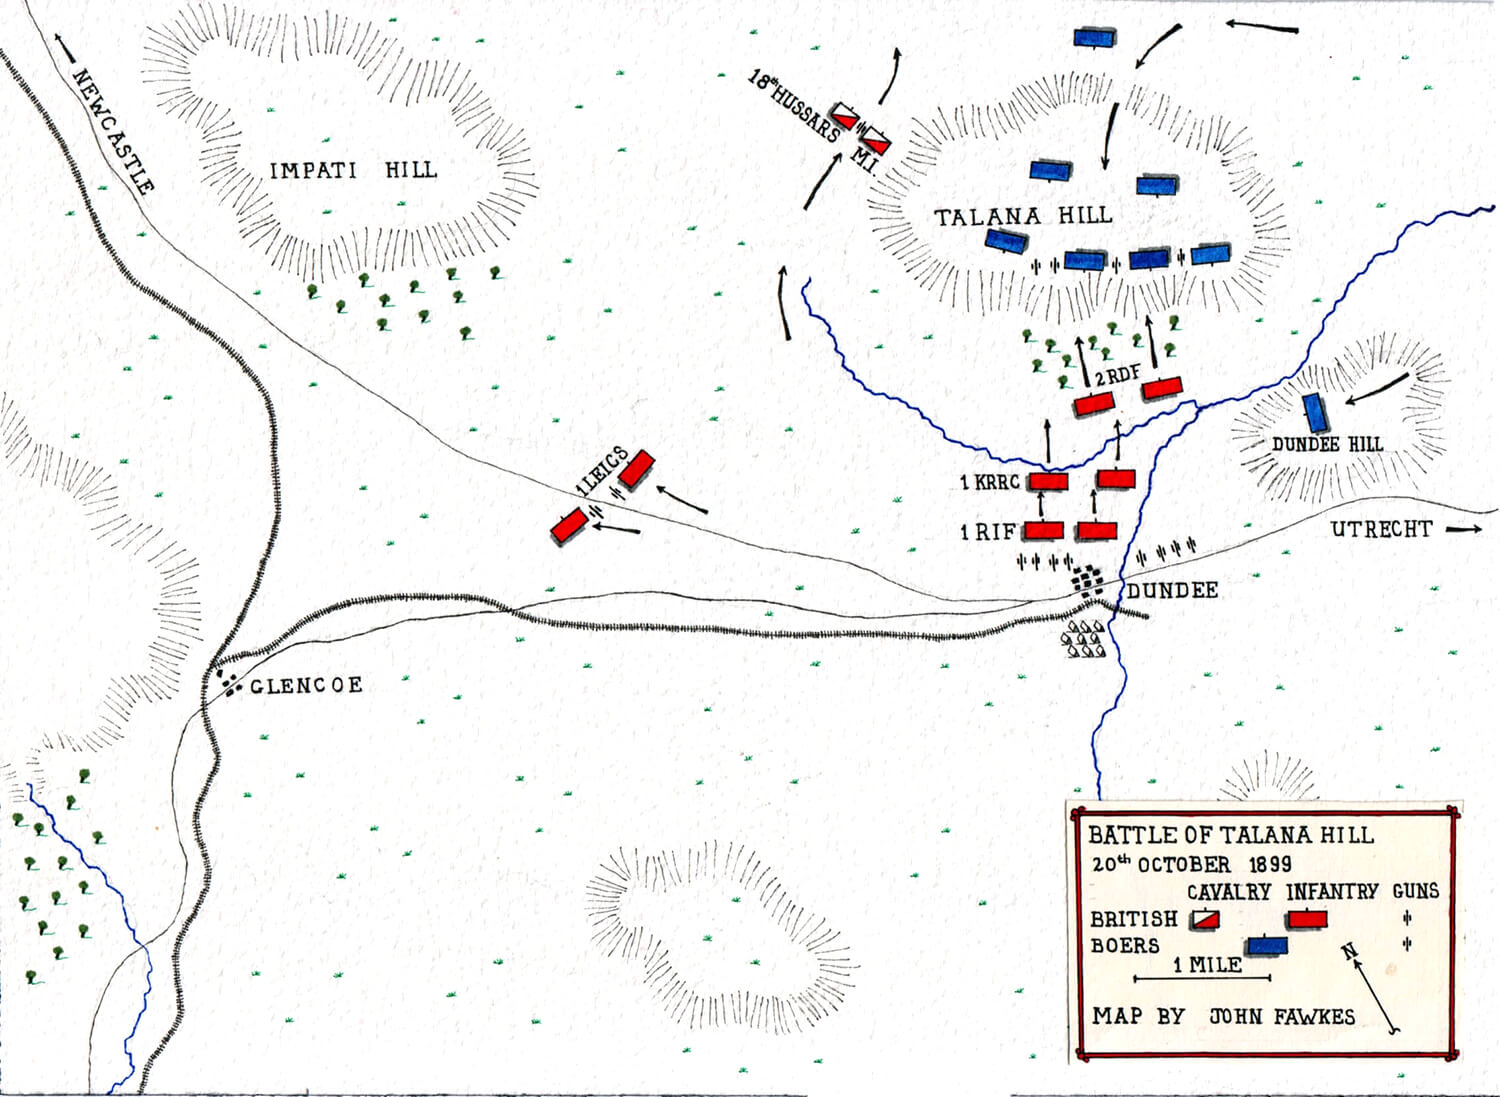 Map of the Battle of Talana Hill or Dundee on 20th October 1899 during the Boer War by John Fawkes